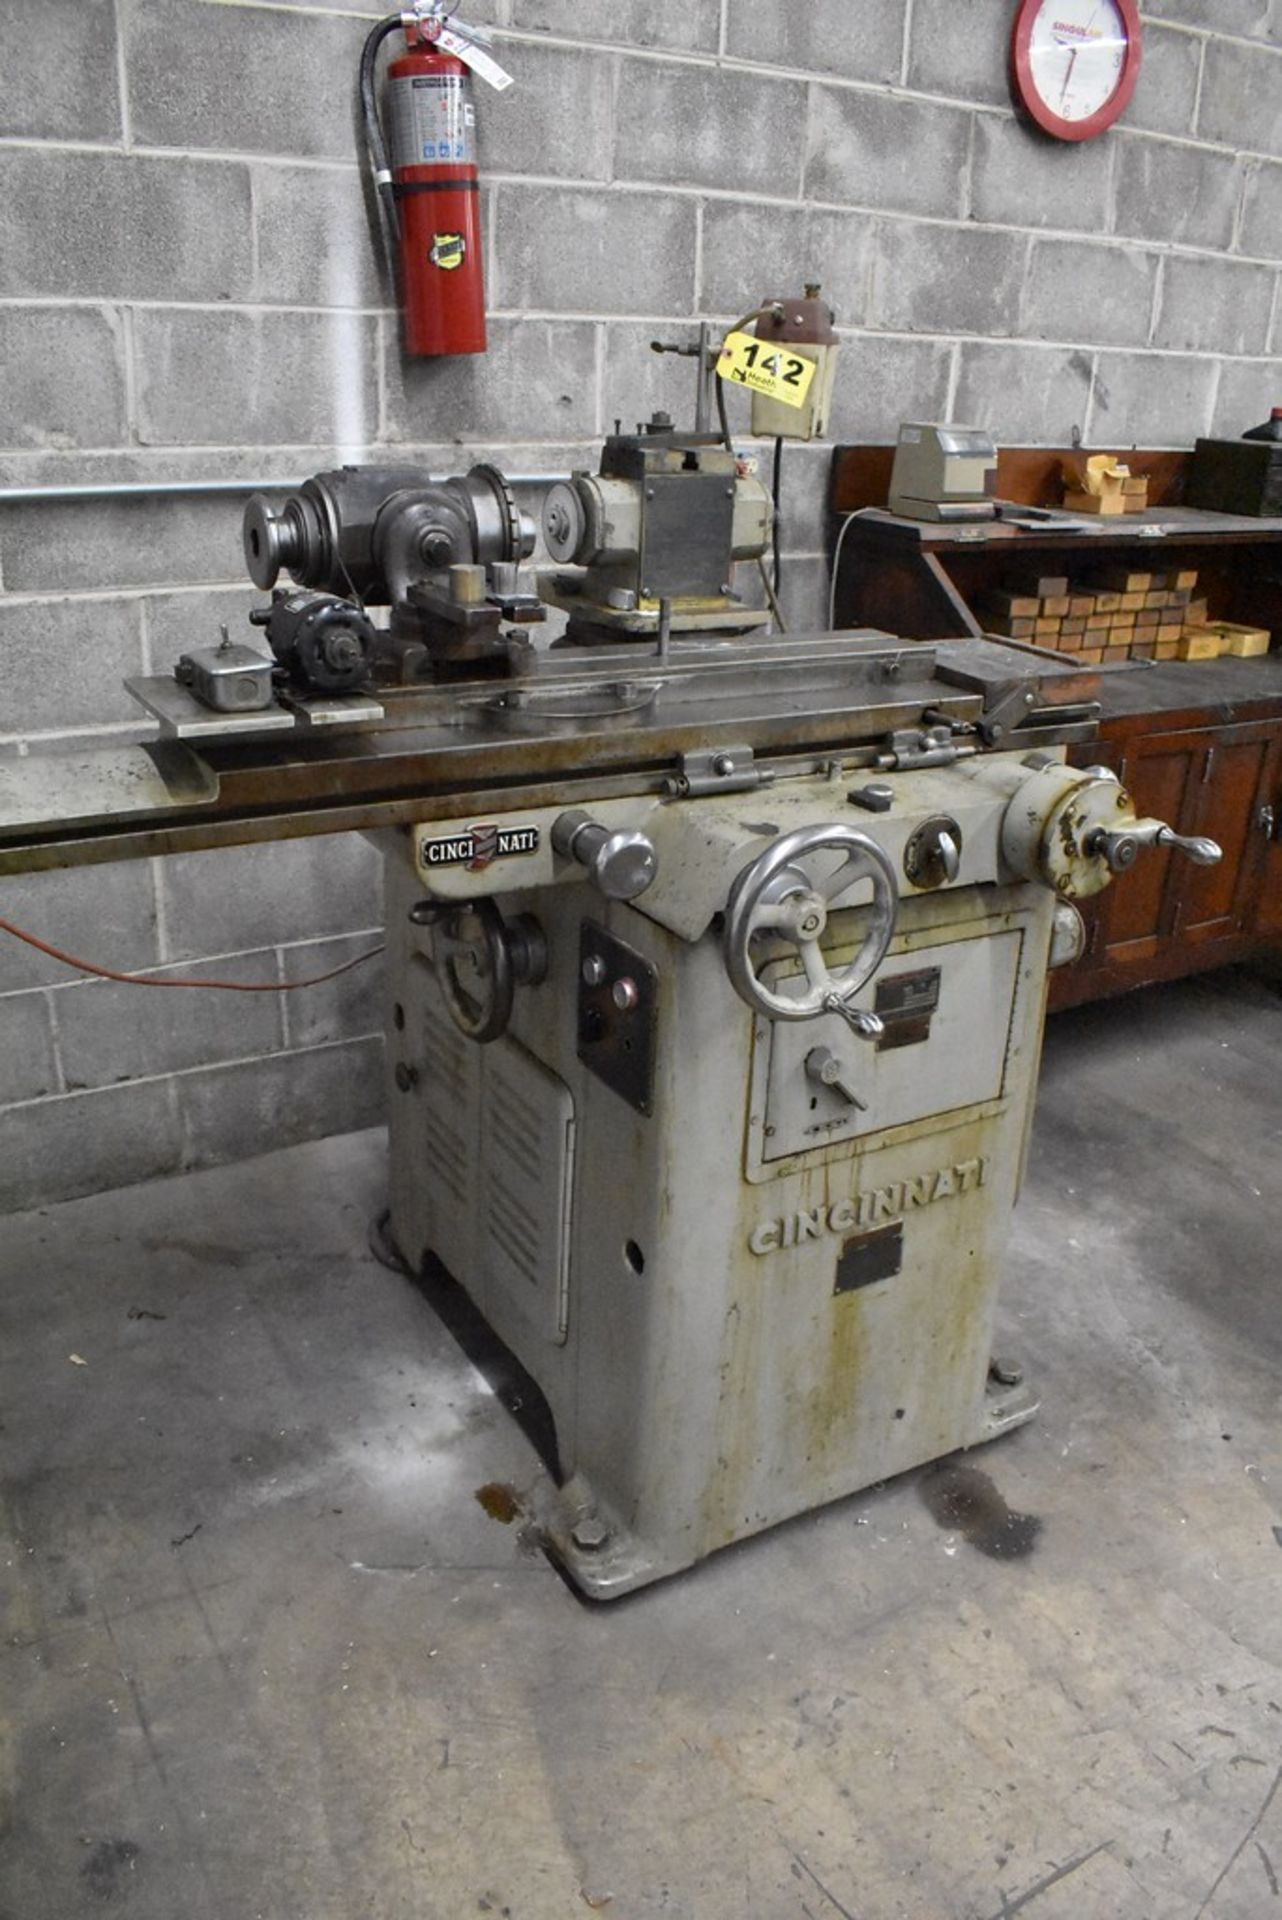 CINCINNATI NO. 2 TOOL AND CUTTER GRINDER, S/N 1D2T1Z-771, WITH MOTORIZED WORK HEAD - Image 5 of 14